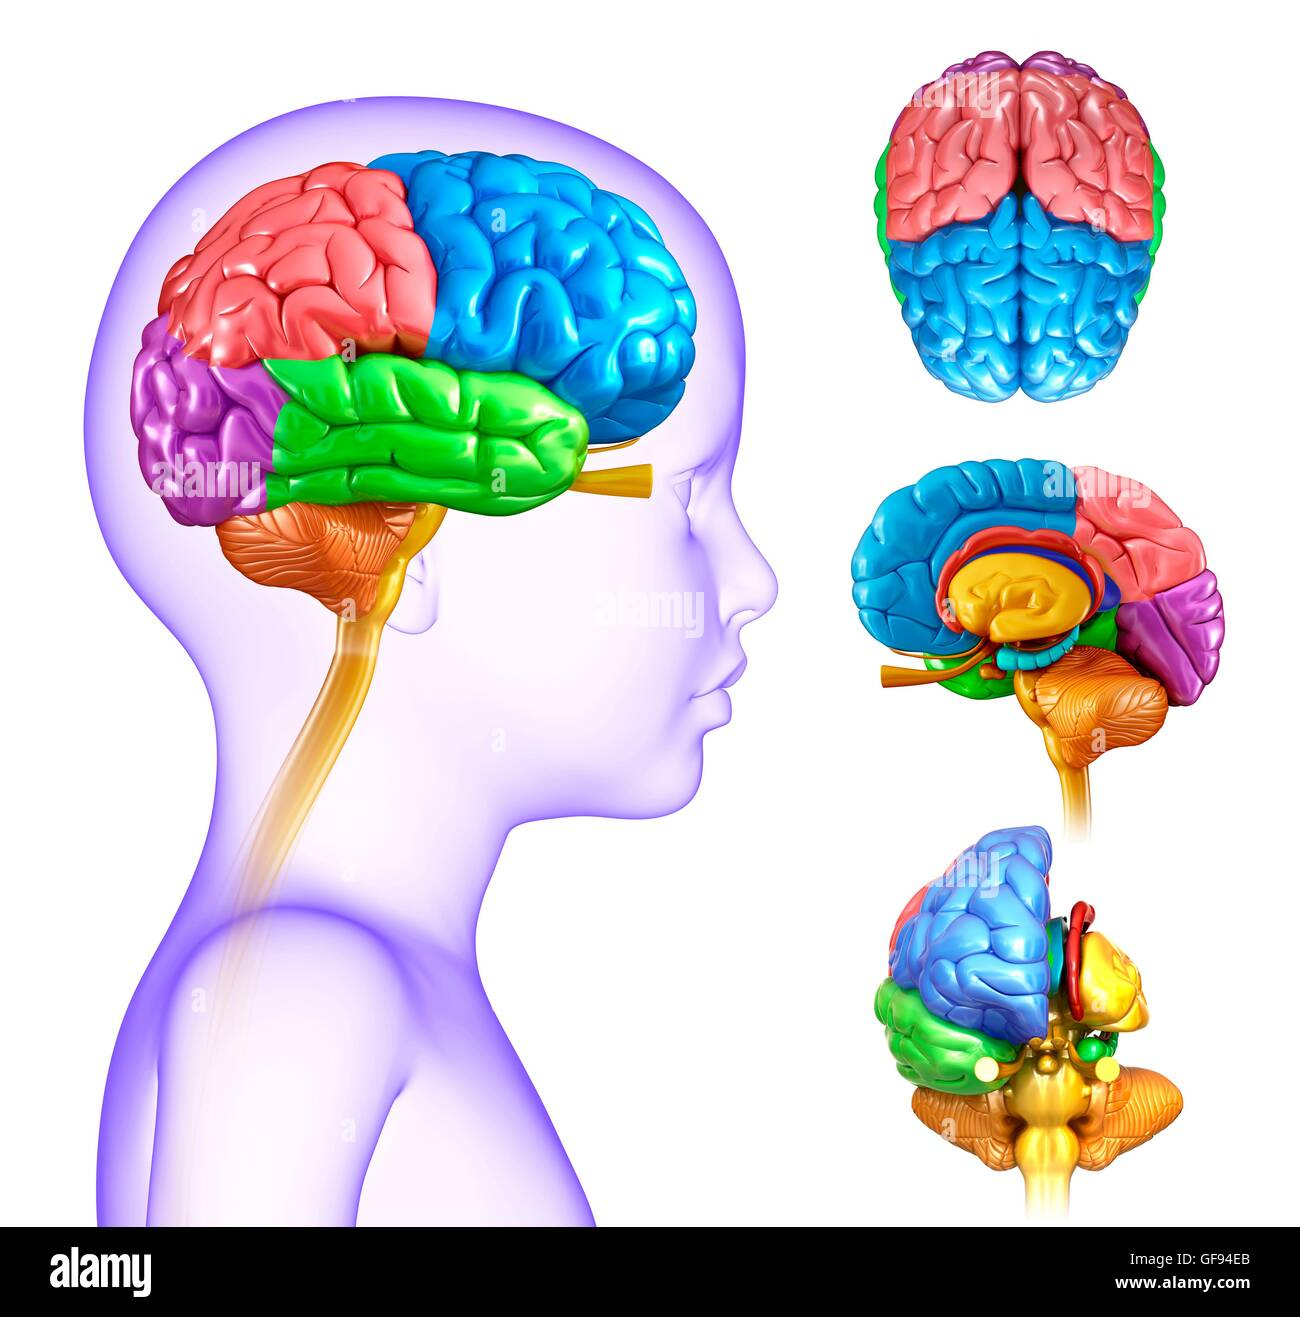 Childs Brain Anatomy Cut Out Stock Images & Pictures - Alamy